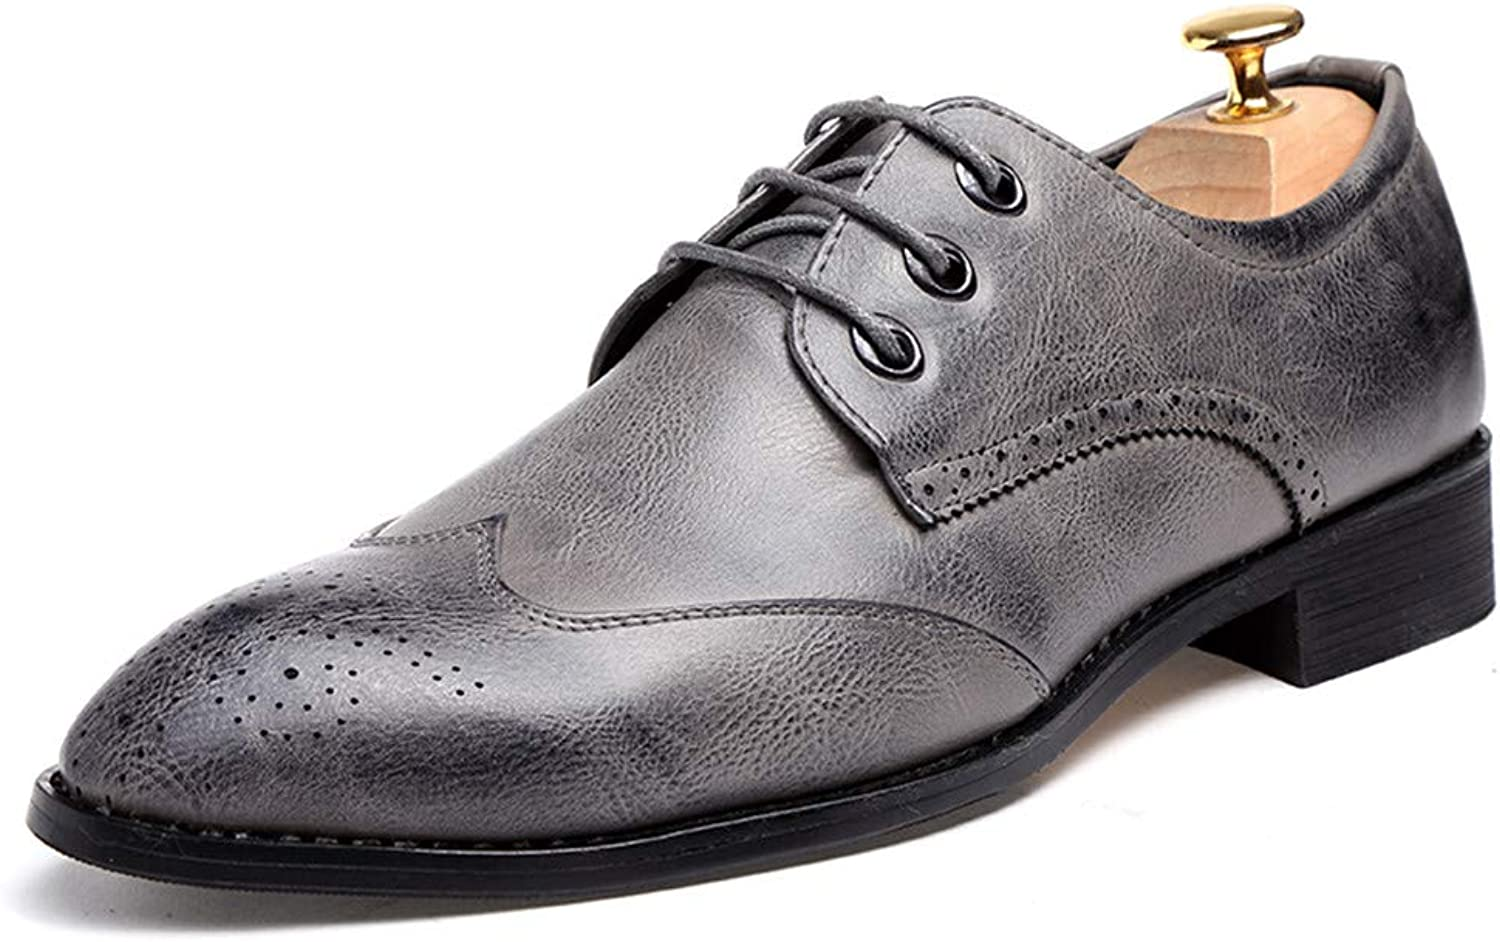 shoes Men's Business Oxford Casual Trend Comfortable Classic Pointed Brogue shoes Leather shoes